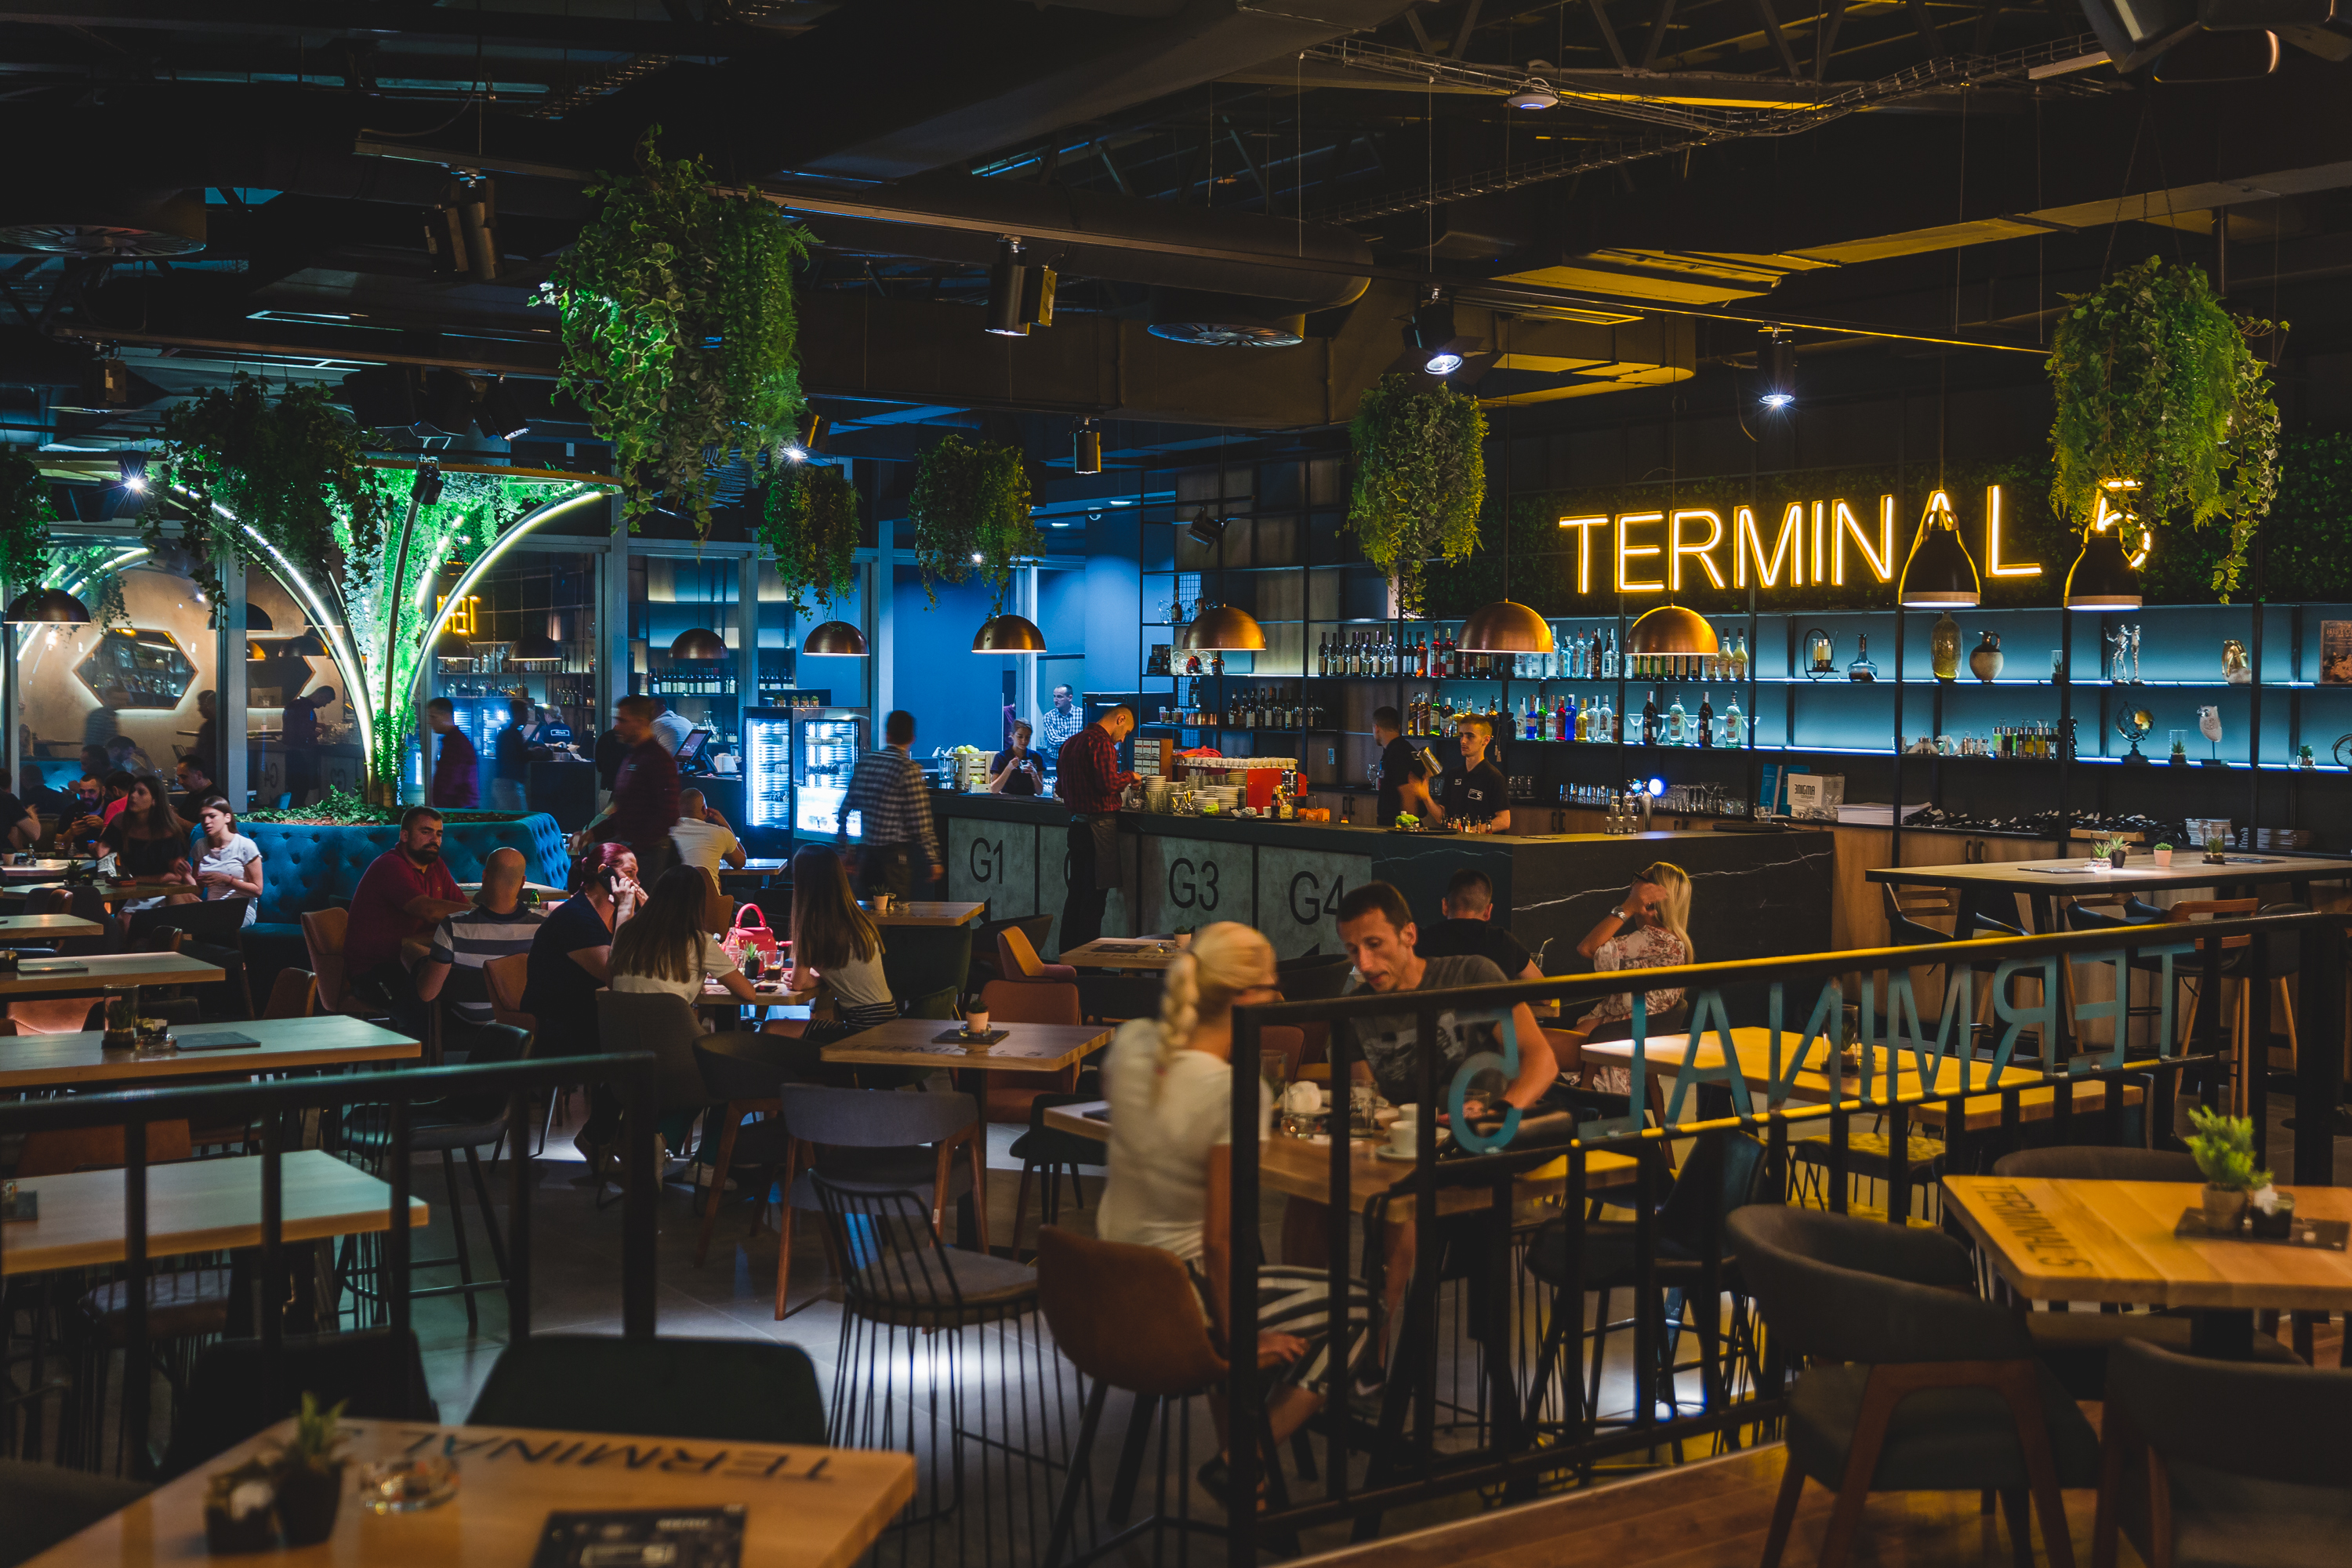 The Terminal, the catering brand taking over the city of Podgorica